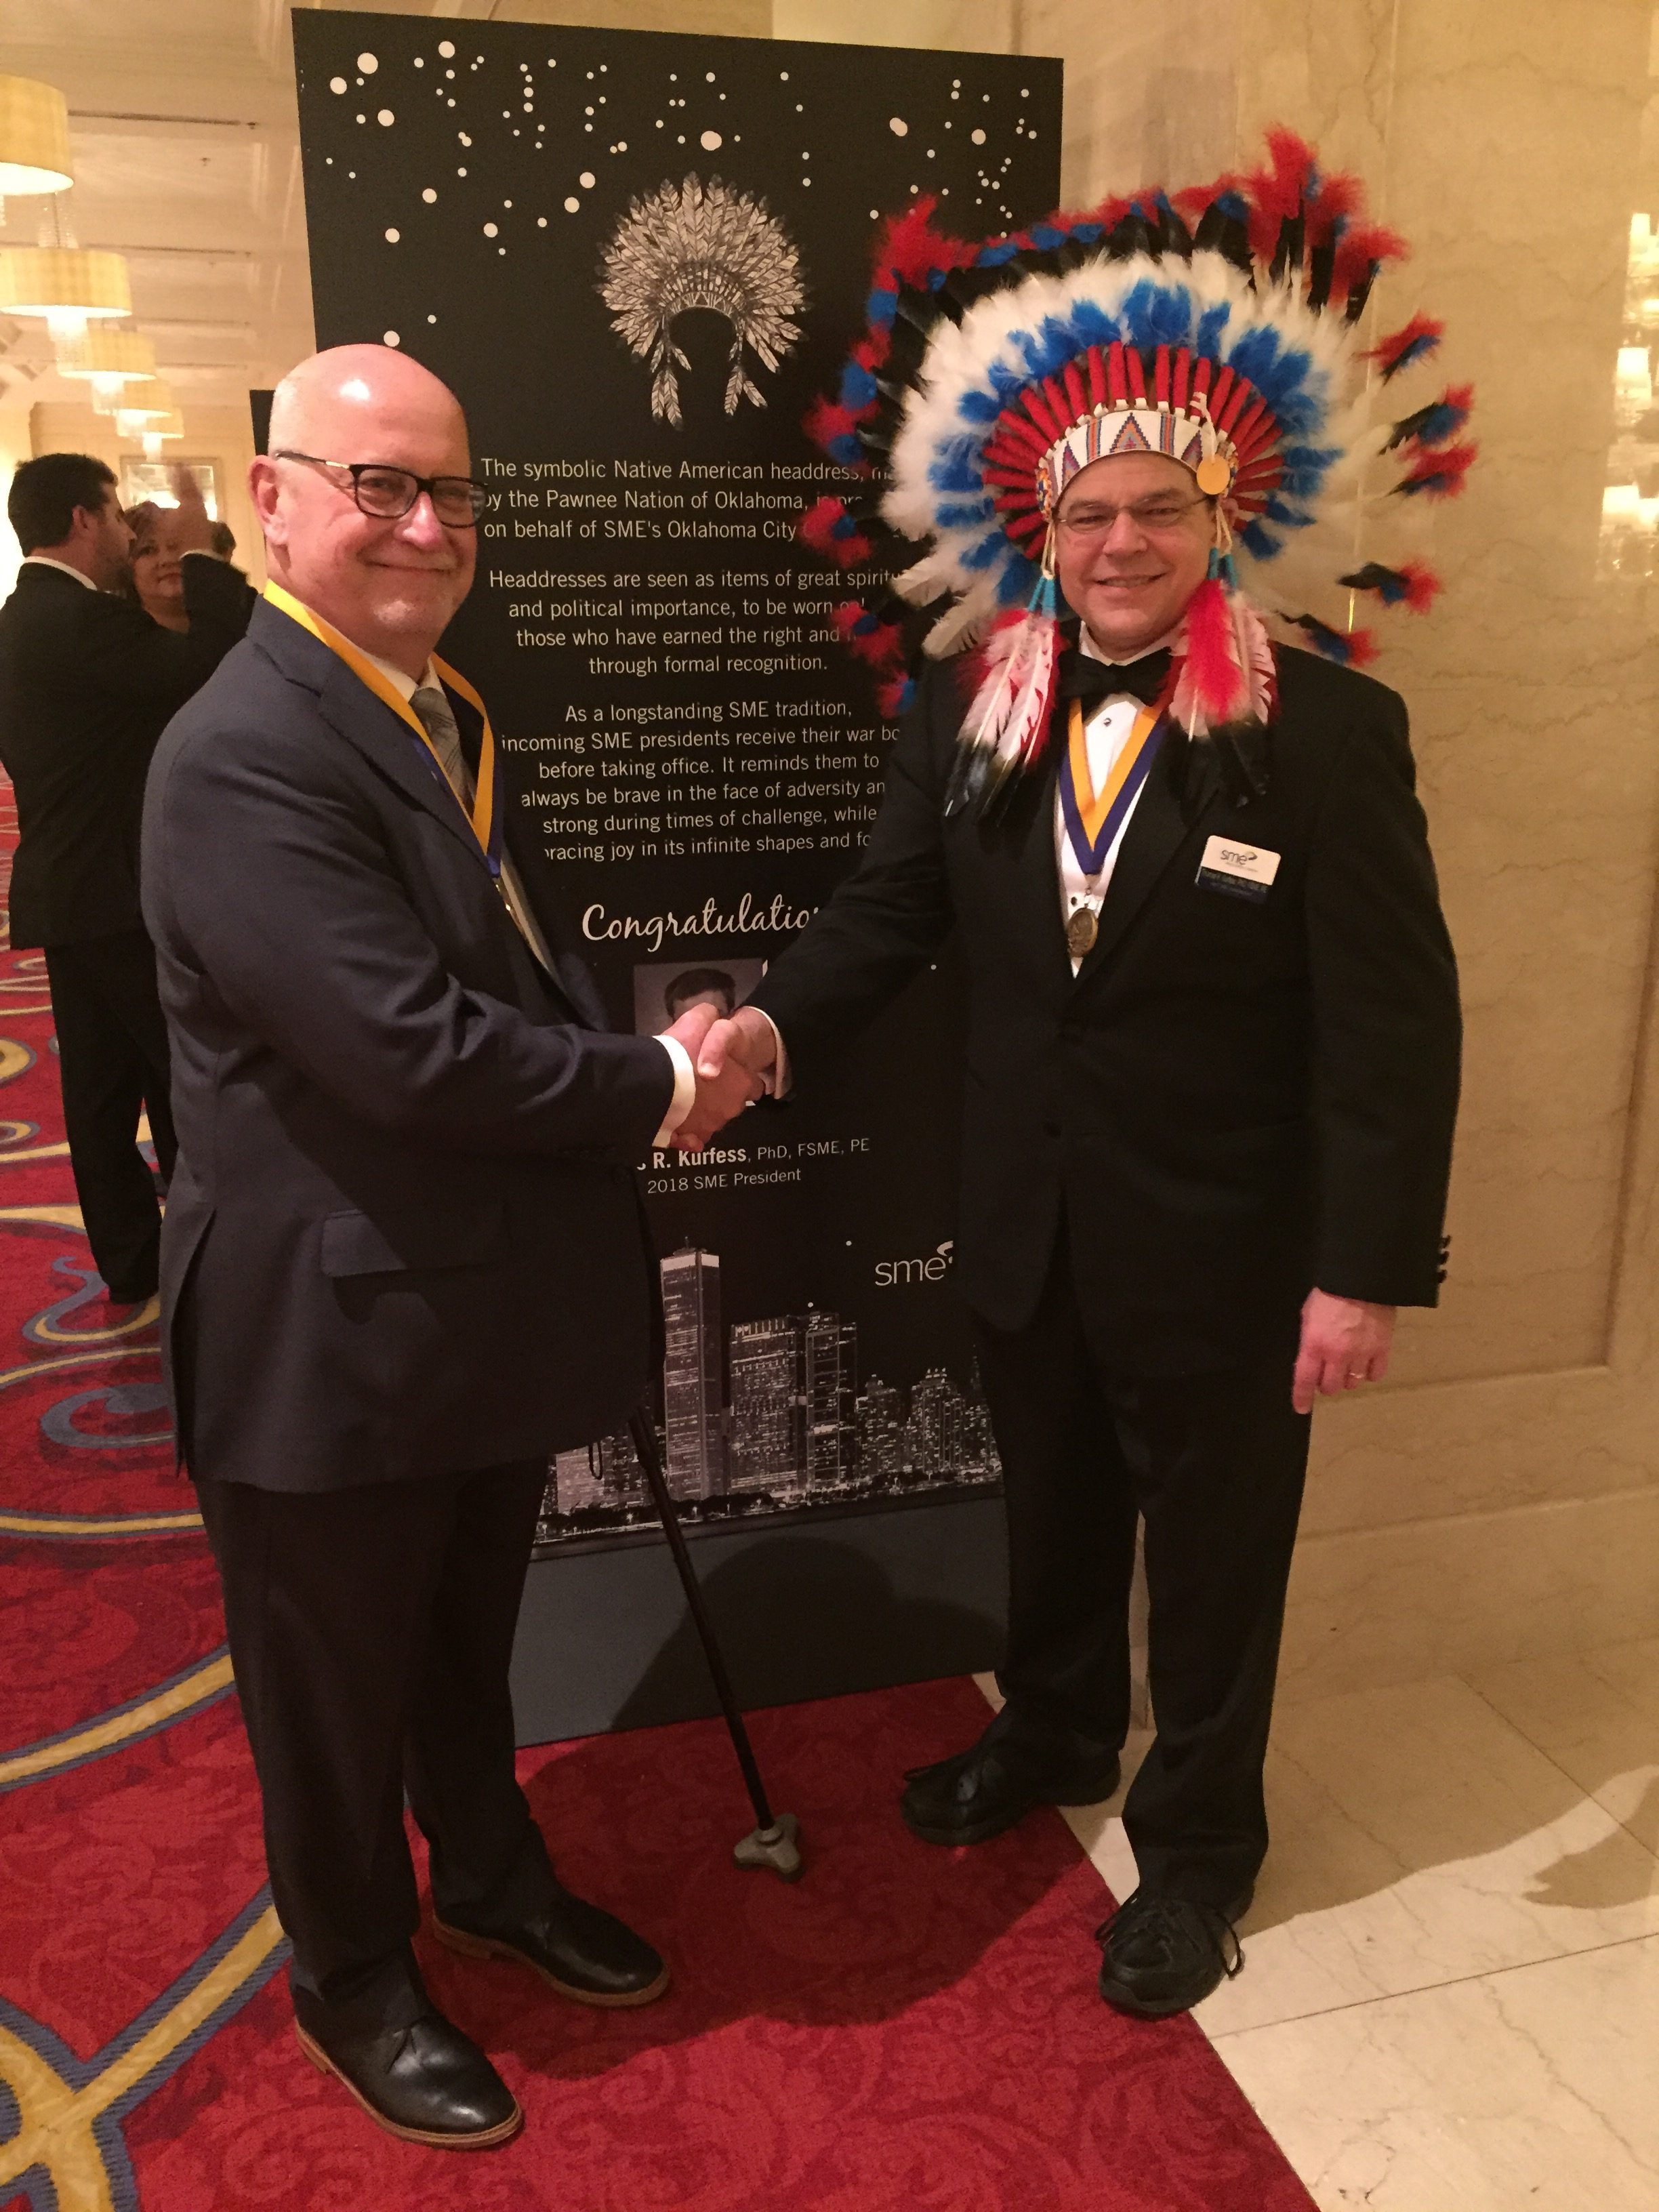 NCDMM's Ralph Resnick was elected to the 2018 SME International Directors and Dr. Tom Kurfess was elected 2018 President of SME at the annual SME Awards & Installation Banquet, Nov. 4, 2017.